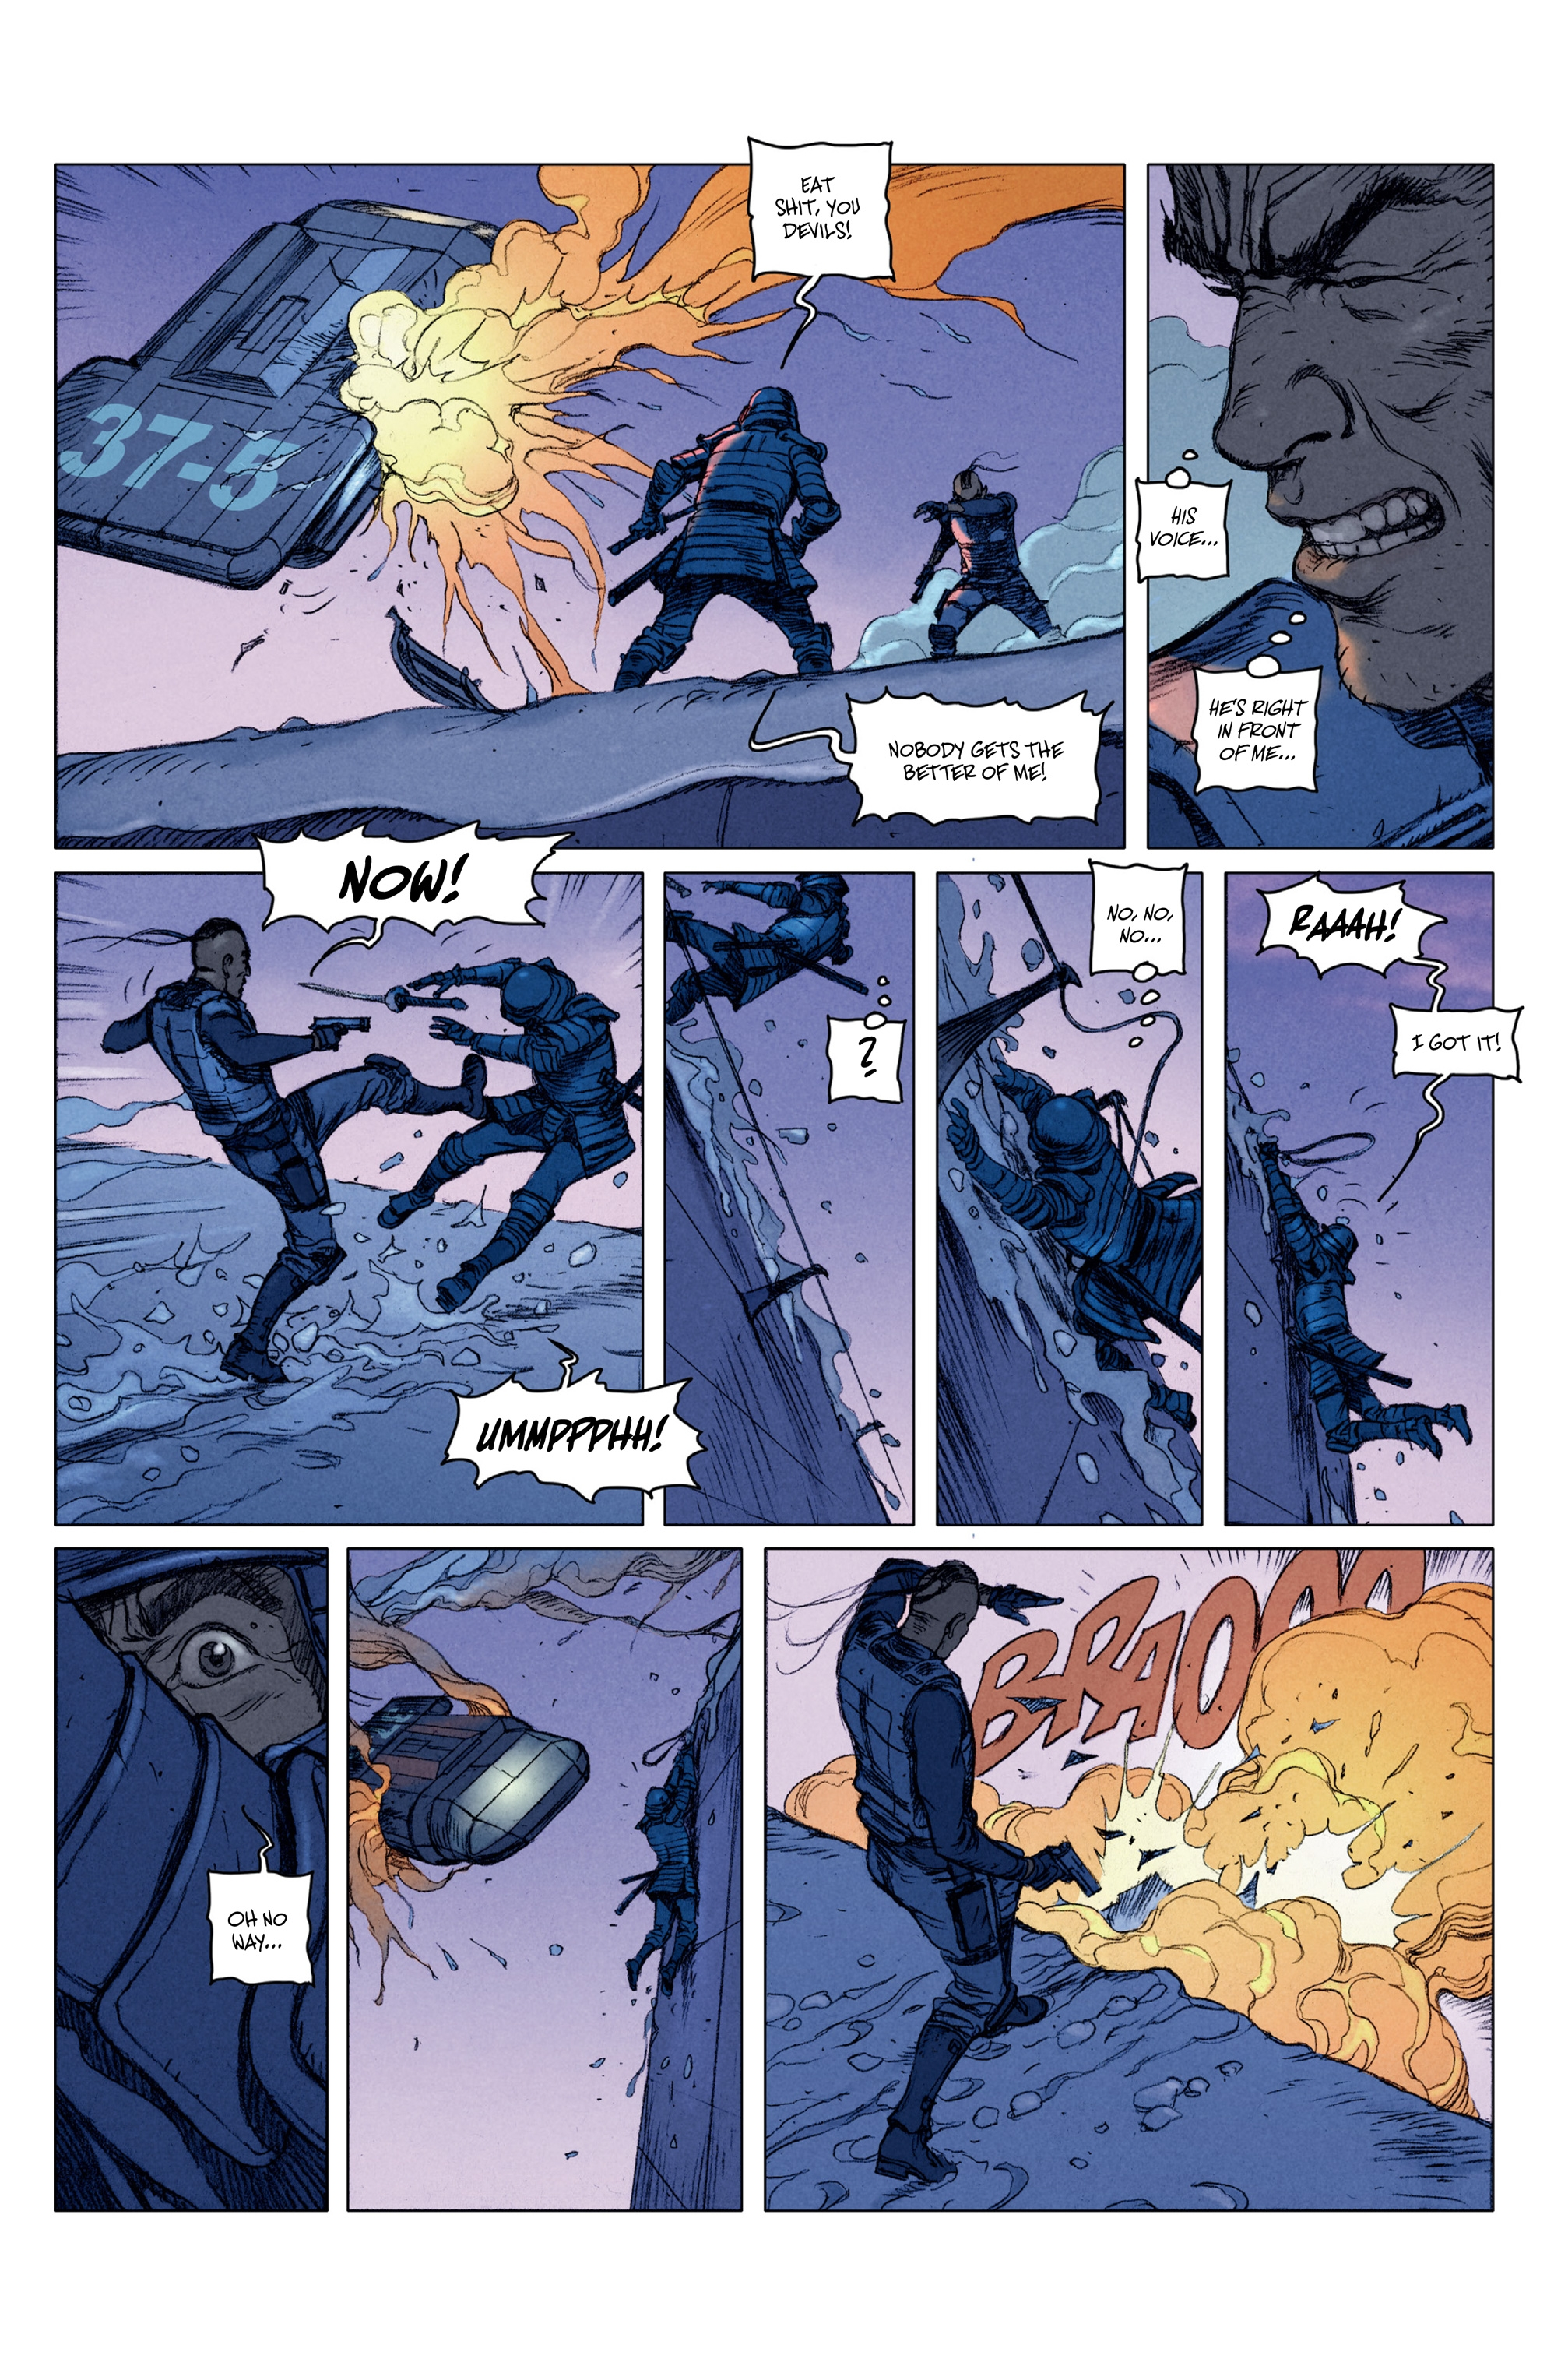 Ab Irato(2017): Chapter 6 - Page Ab Irato(2017)